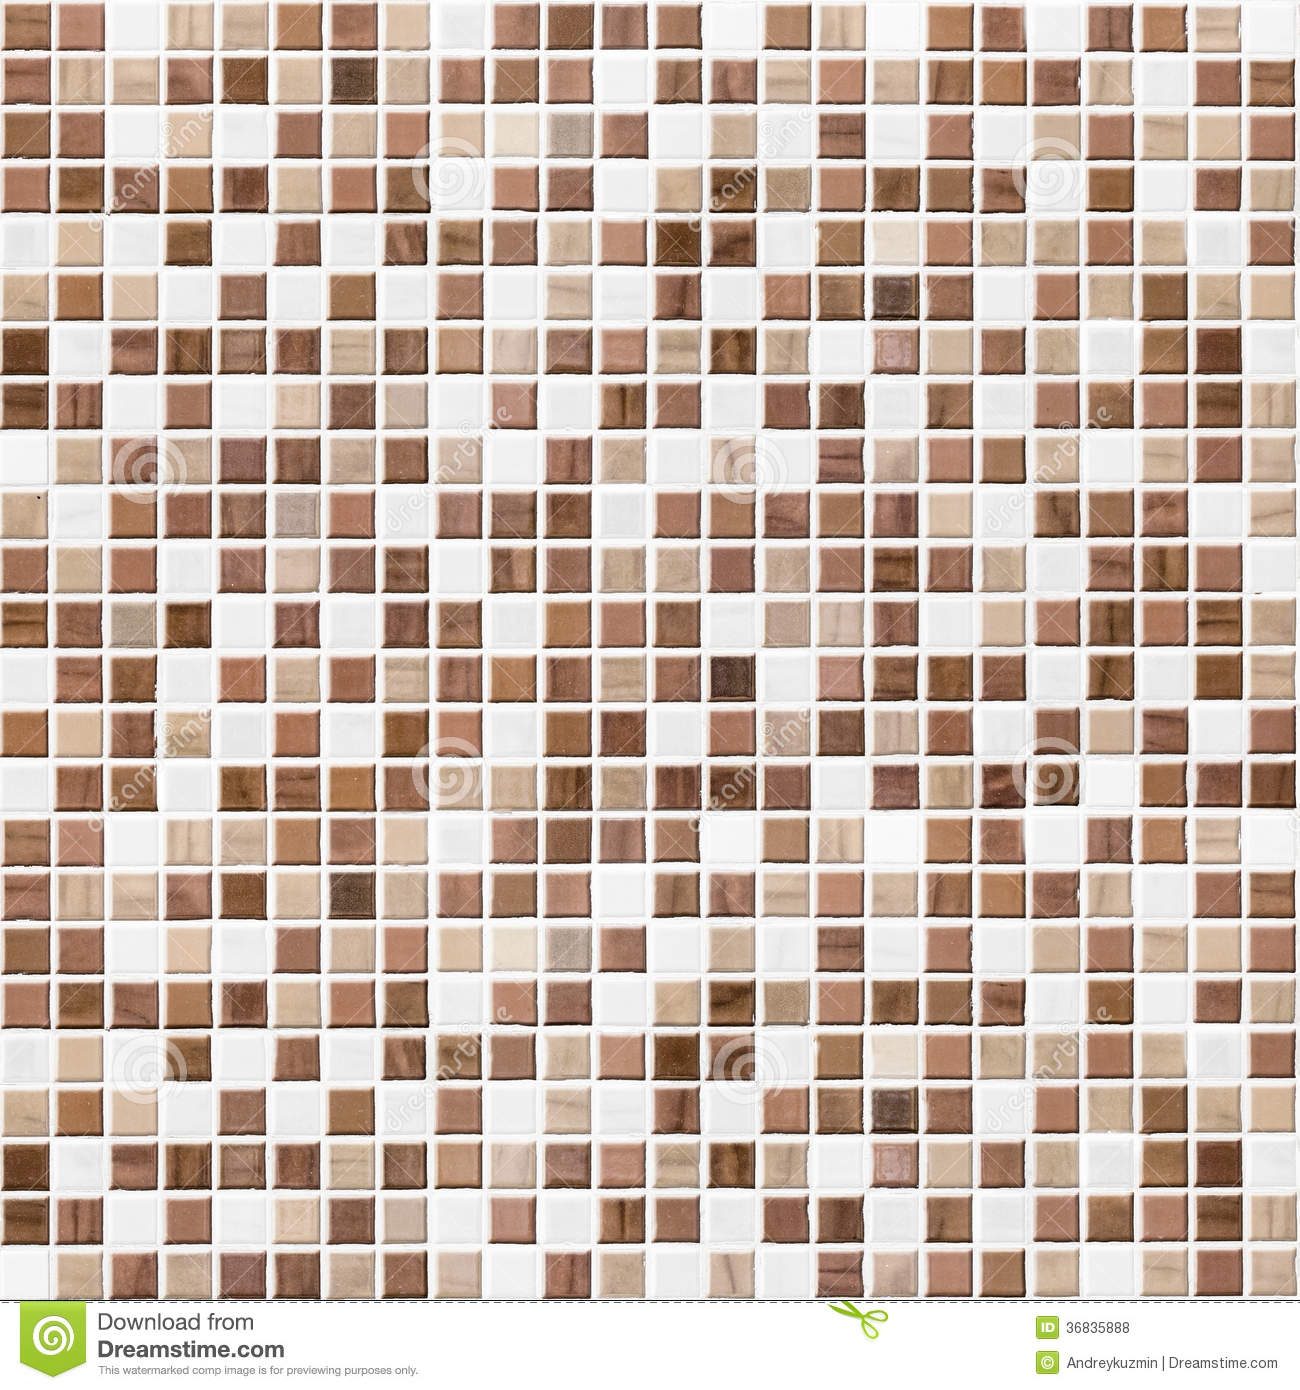 Kitchen Wall Background brown tiled bathroom, kitchen or toilet tile wall background